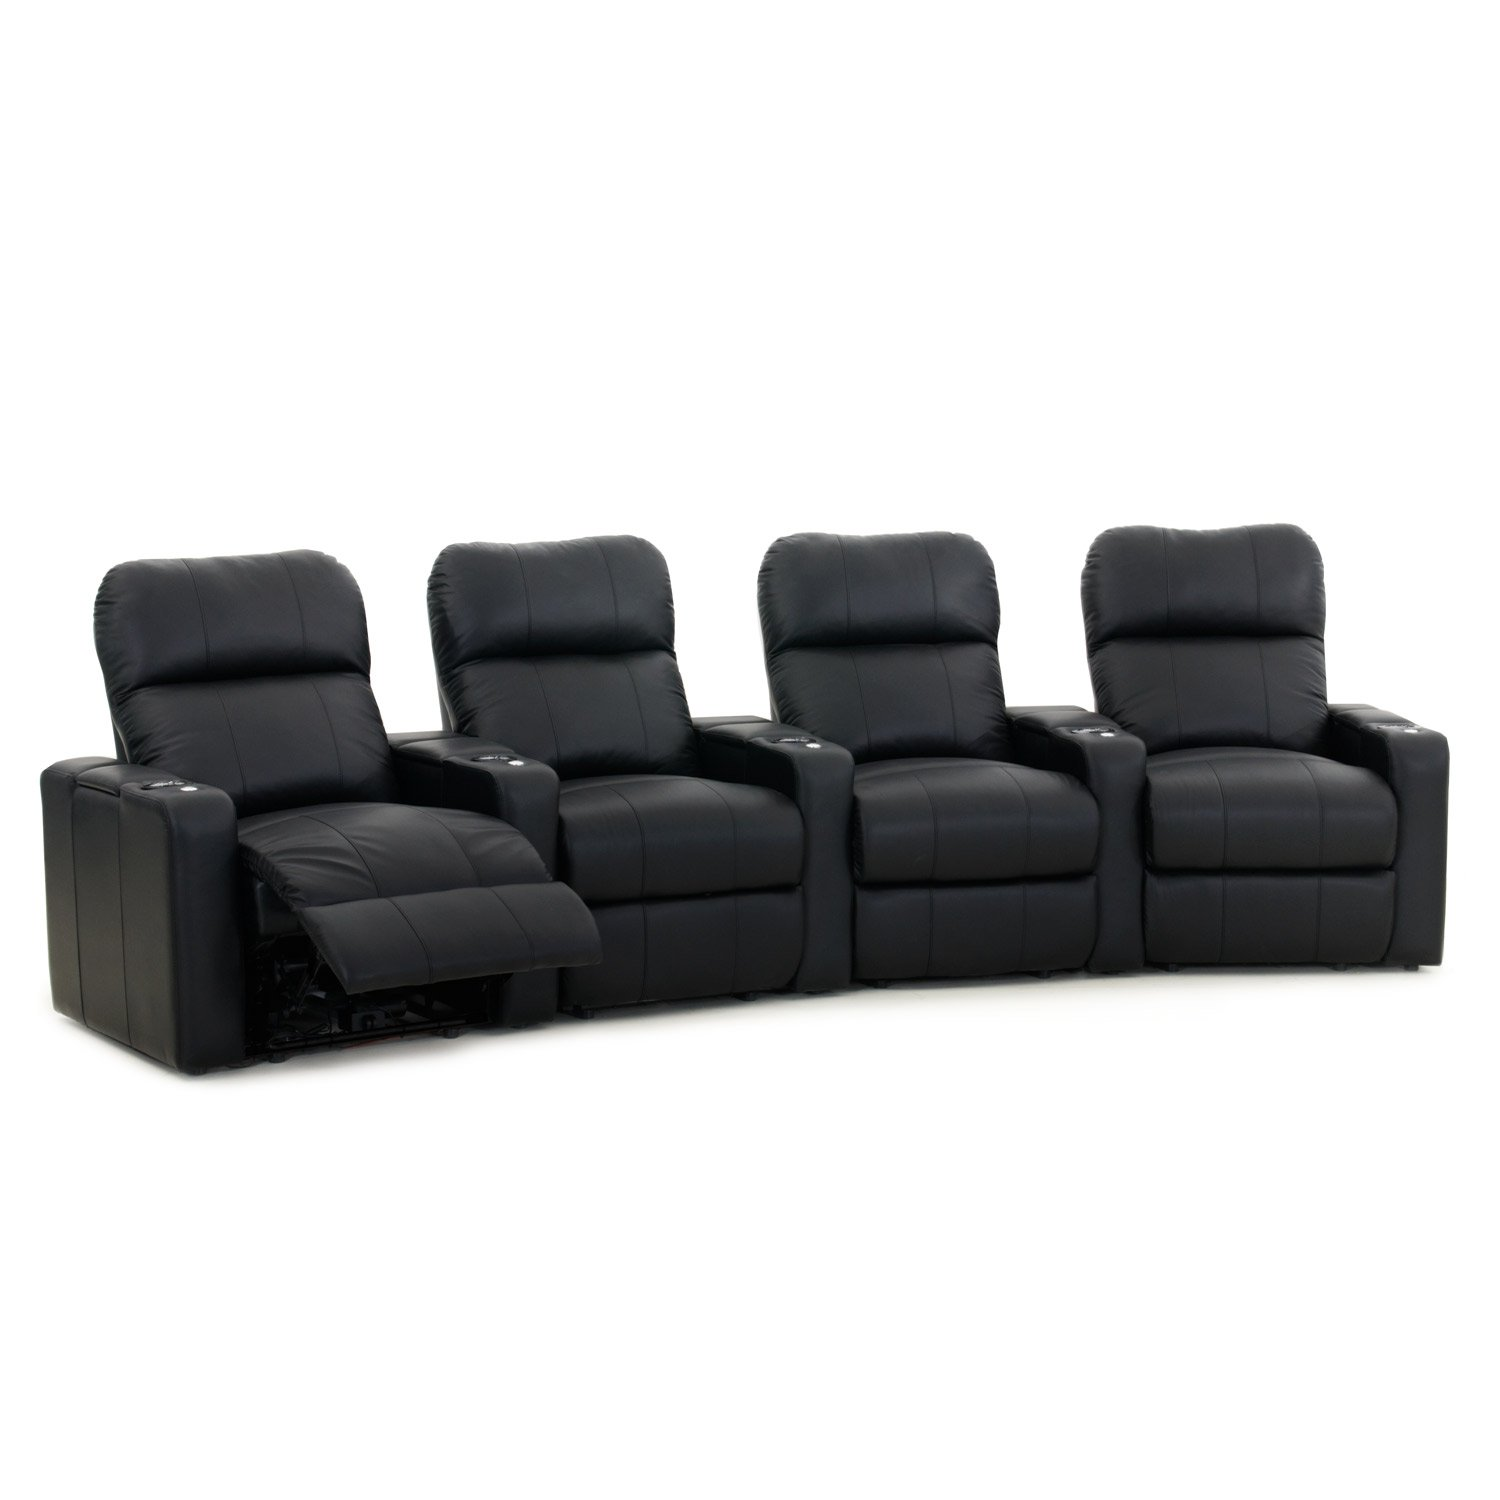 Octane Turbo XL700 Black Bonded Leather with Manual Recline (Row of 4 Curved) by Octane Seating